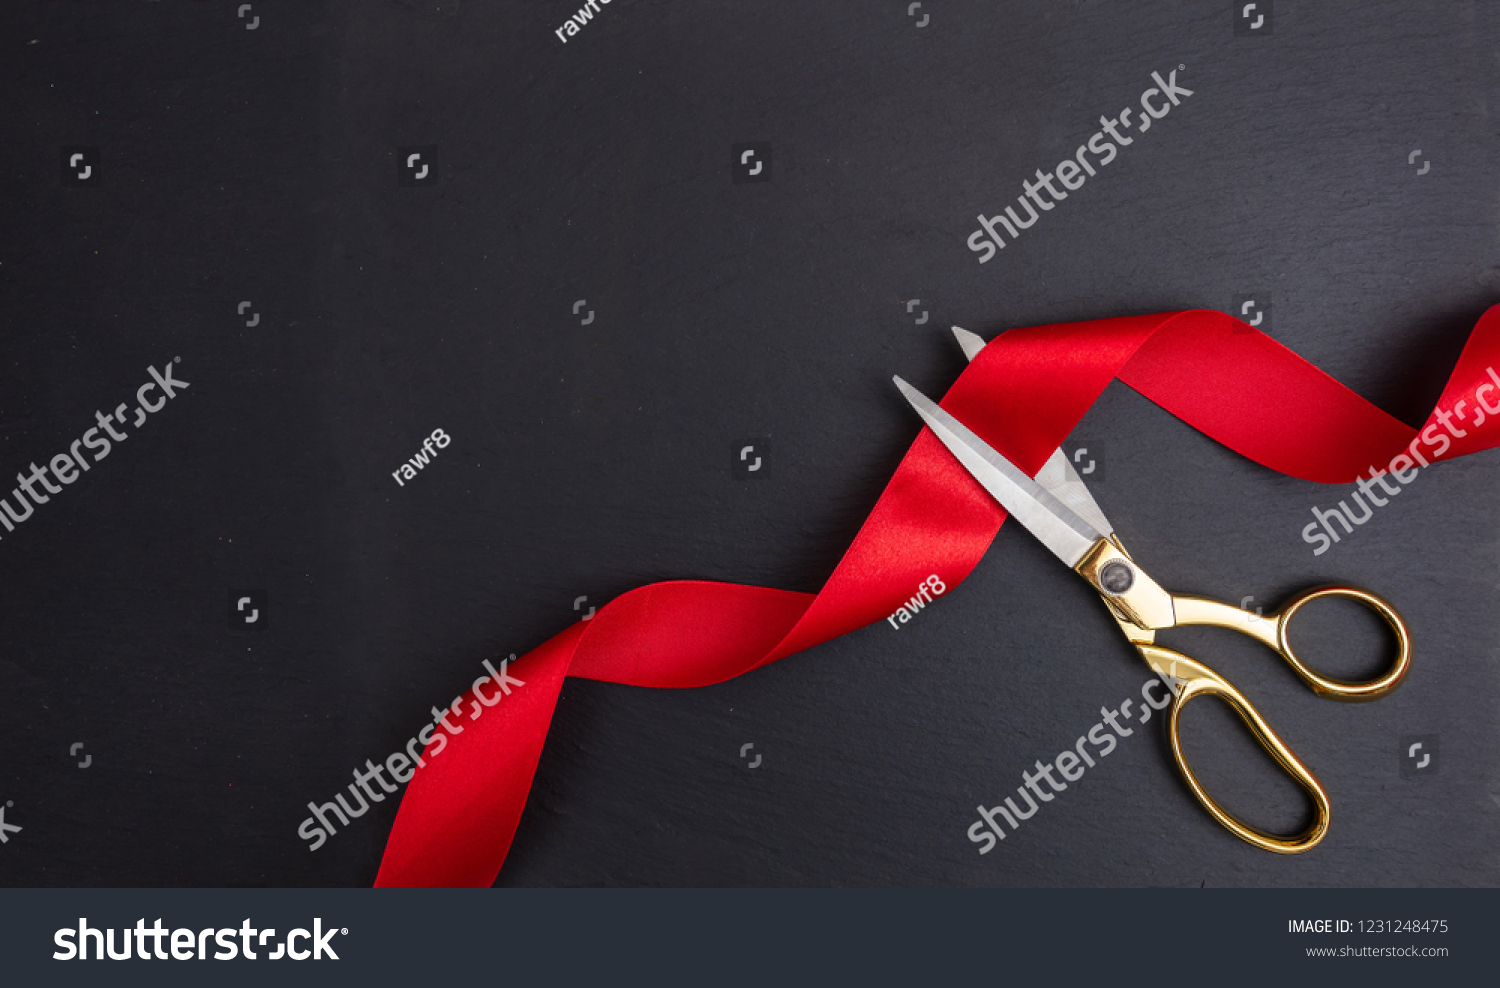 Grand opening. Top view of gold scissors cutting red silk ribbon against black background, copy space #1231248475